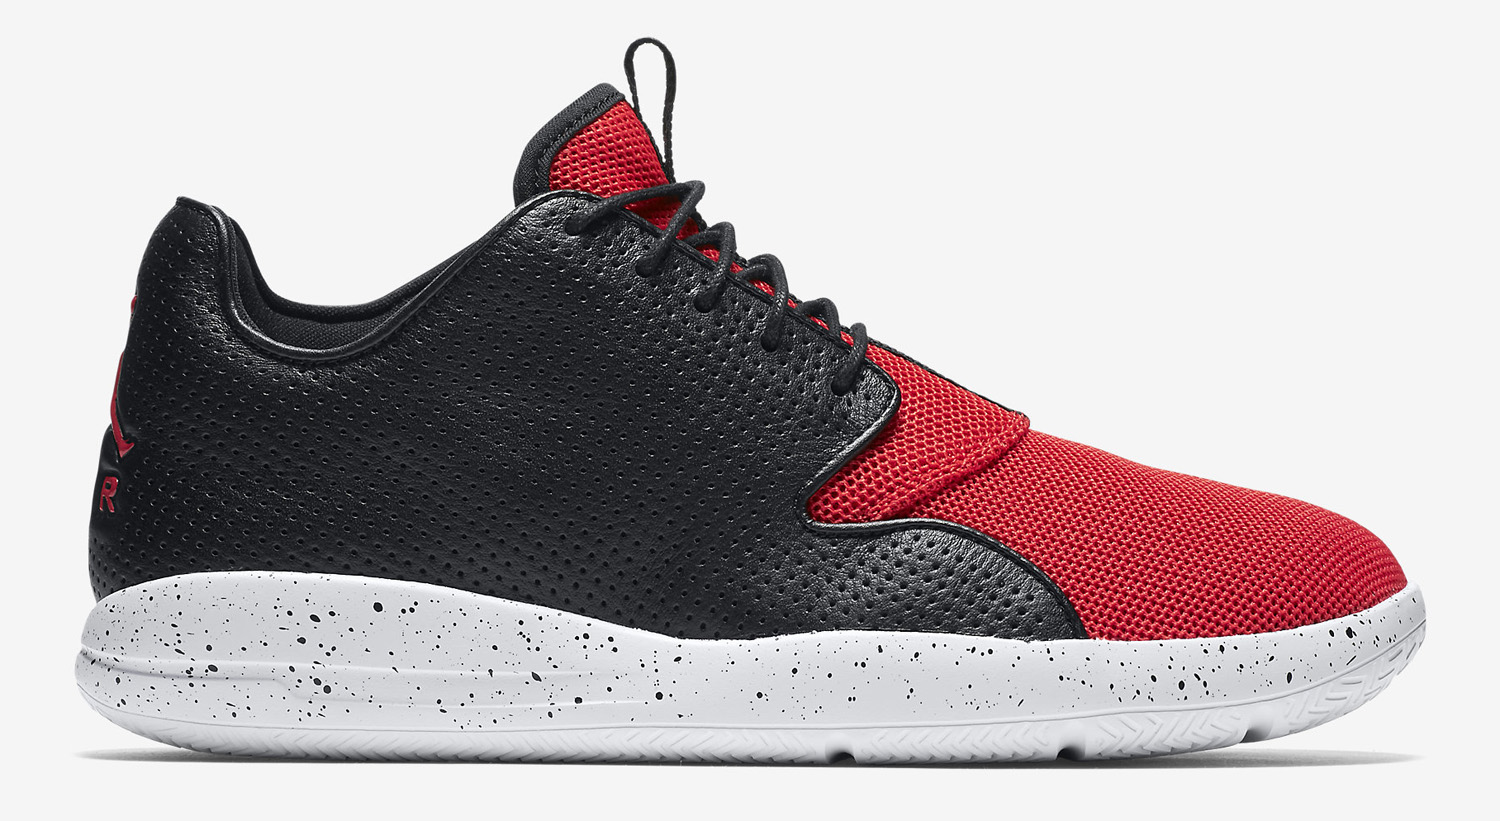 The Jordan Eclipse Dons Iconic Air